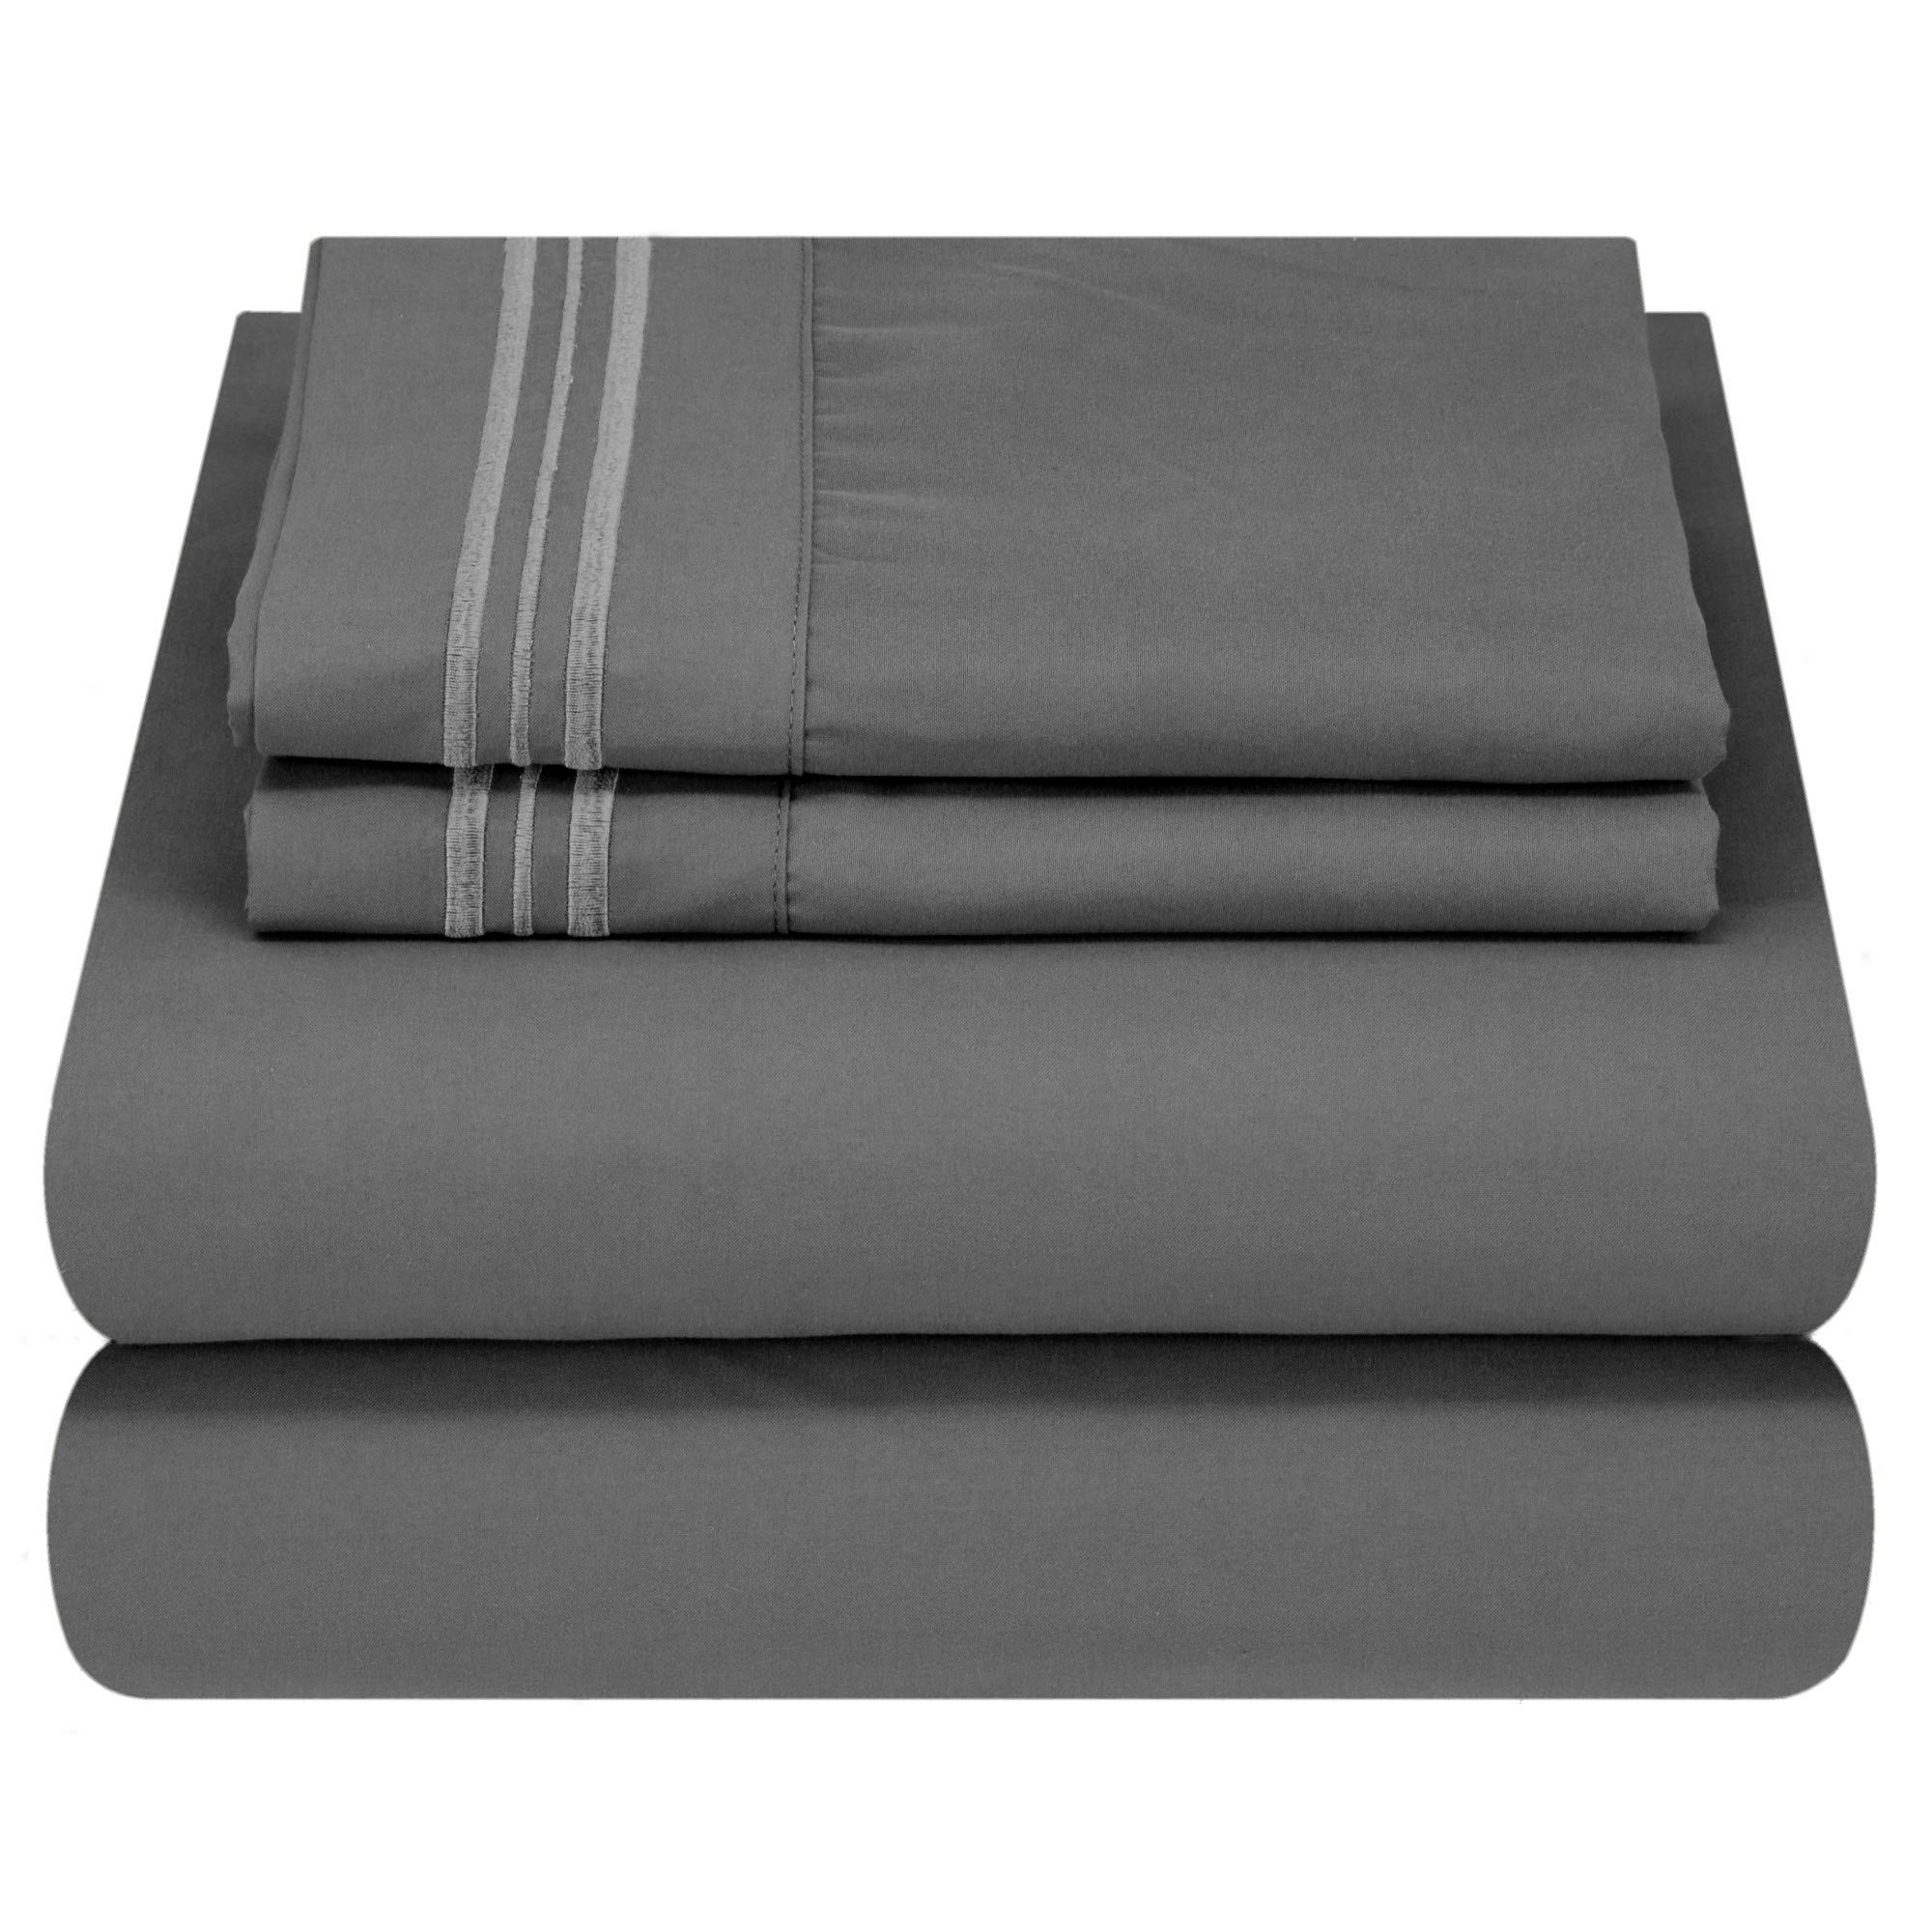 Mezzati Luxury Bed Sheet Set - Soft and Comfortable 1800 Prestige Collection - Brushed Microfiber Bedding (Gray, Twin XL Size)